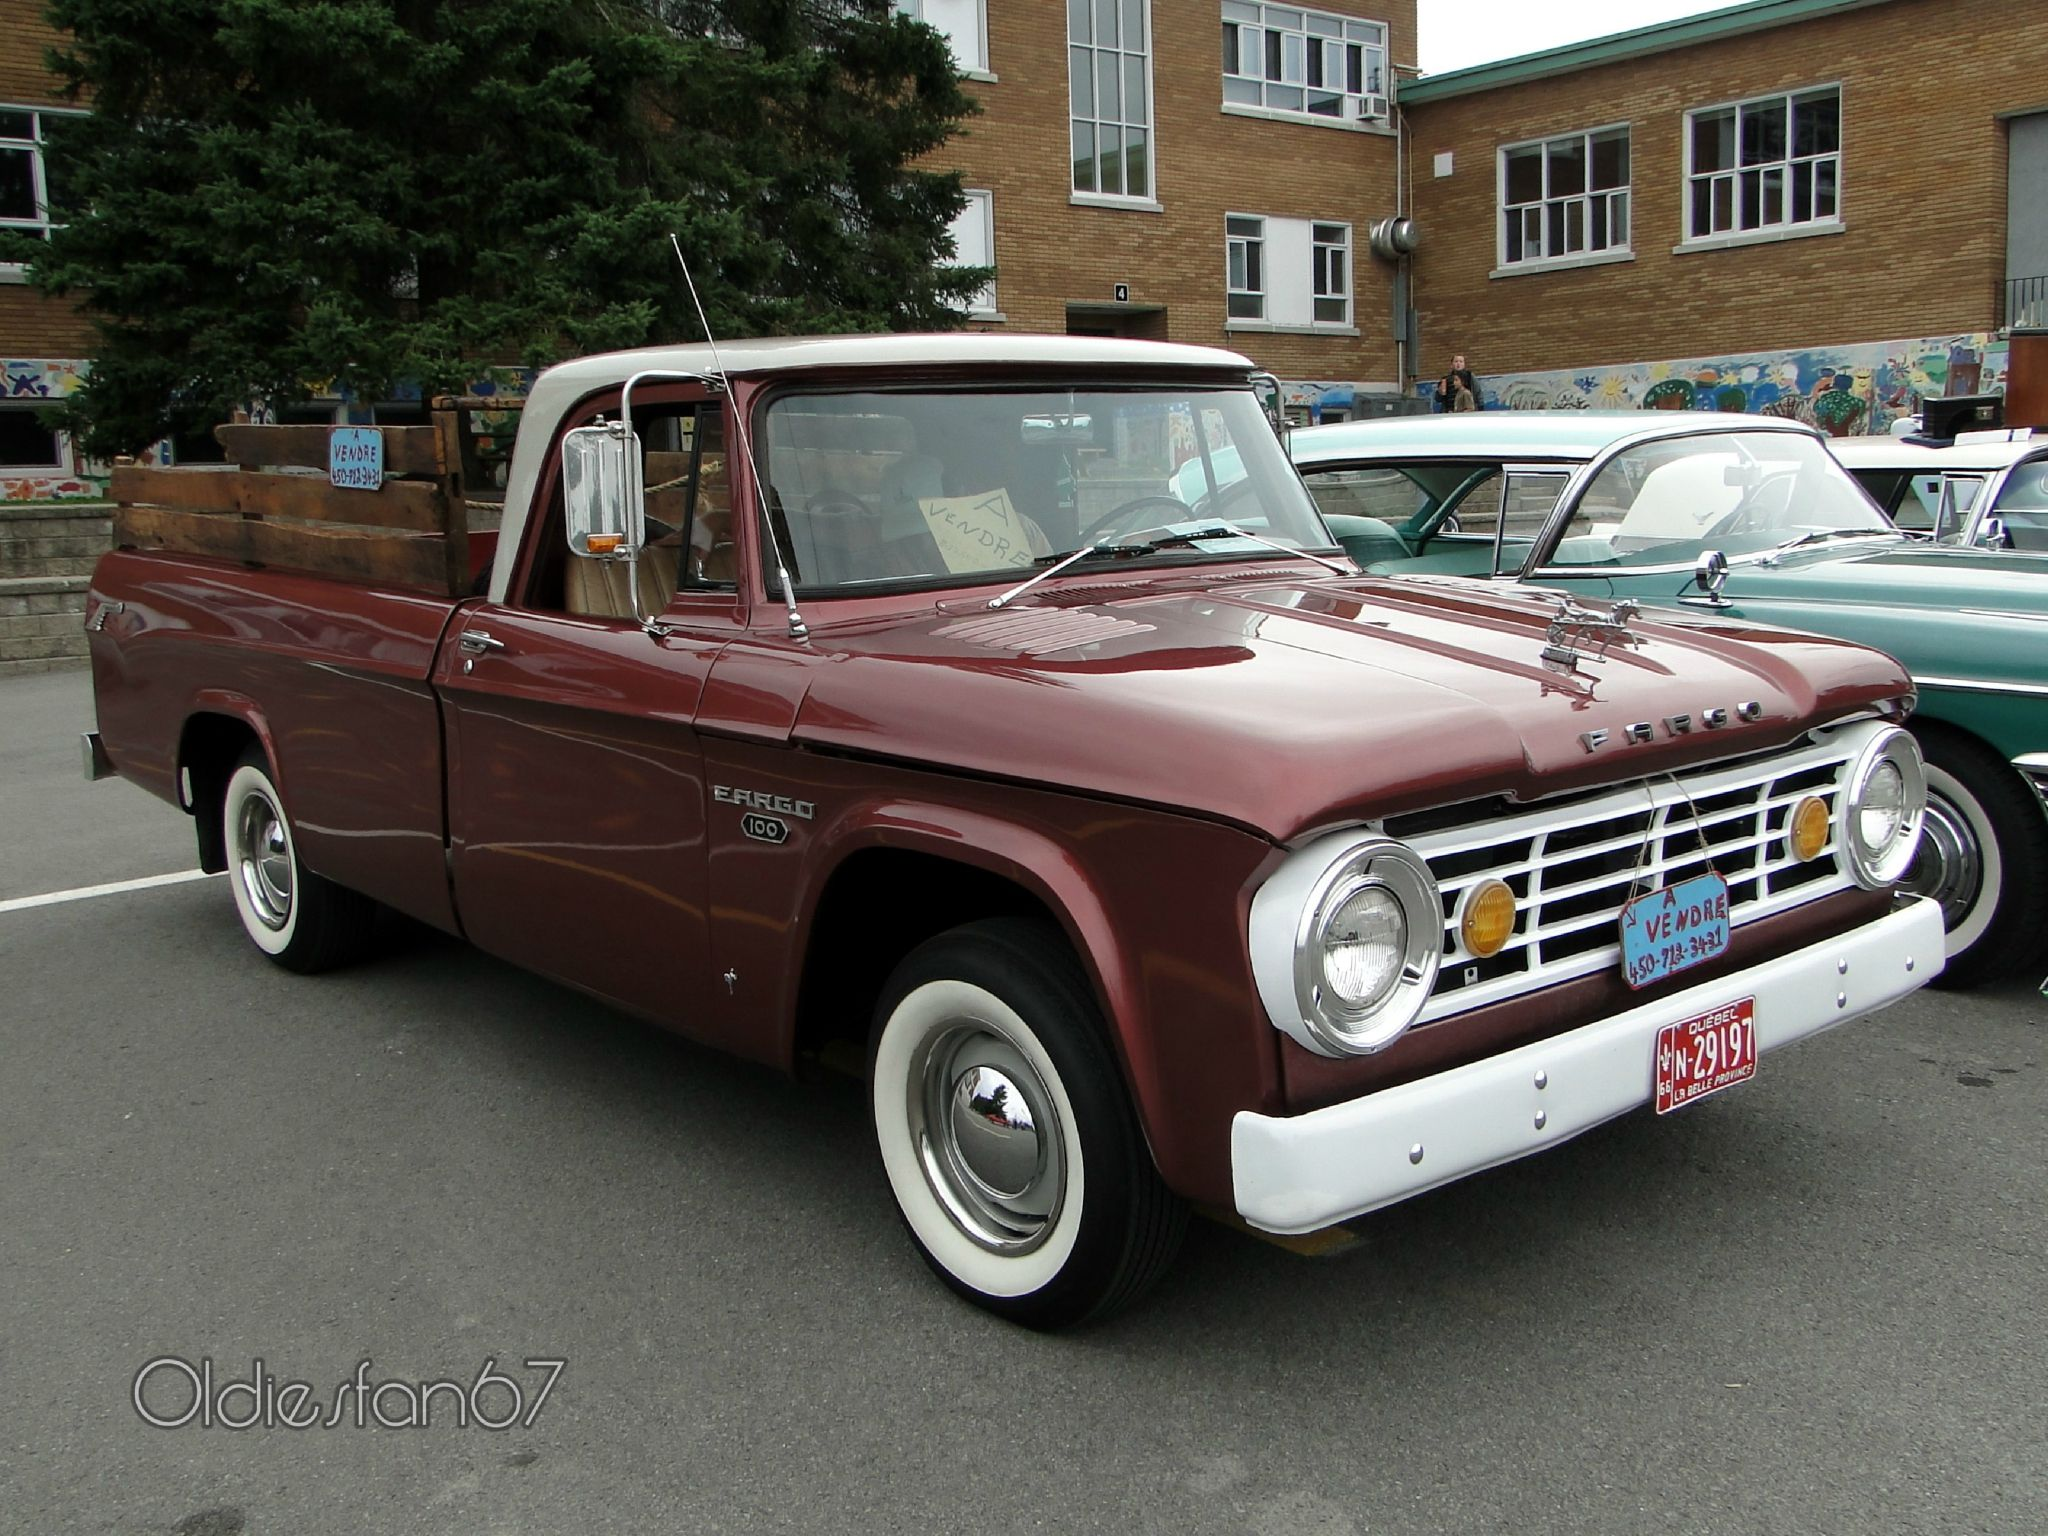 1966 Fargo D100 Pickup Truck In Quebec Old Dodge Trucks Dodge Trucks Classic Cars Vintage